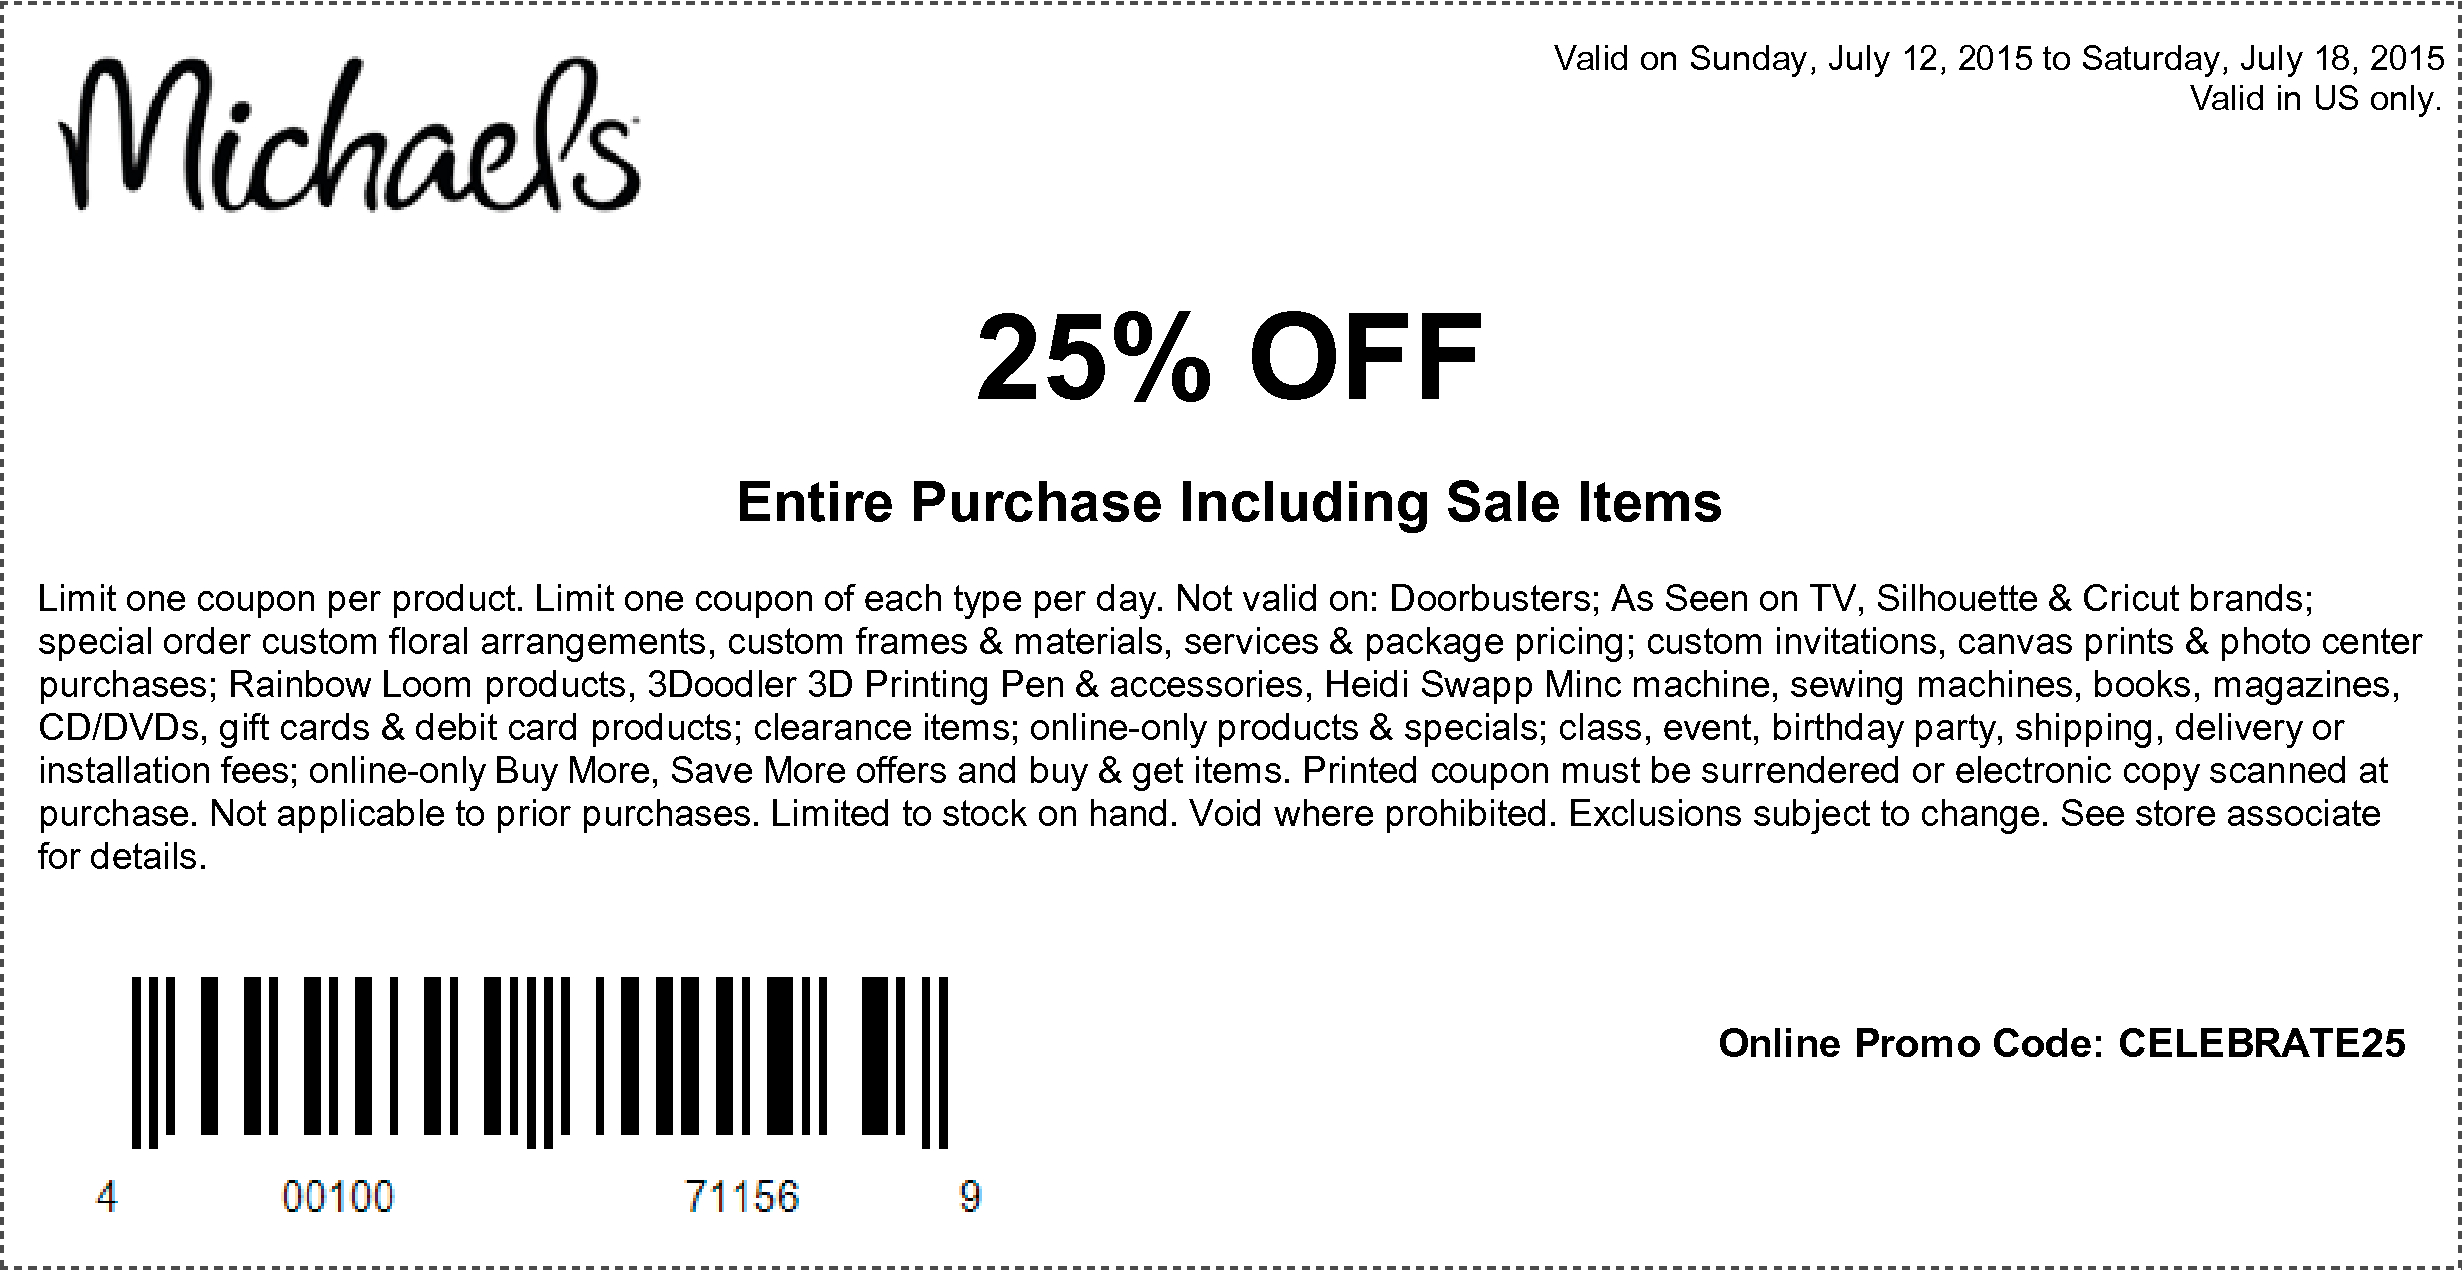 Entire Purchase Including Sale Items | Stuff To Buy | Free Printable - Free Printable Michaels Coupons